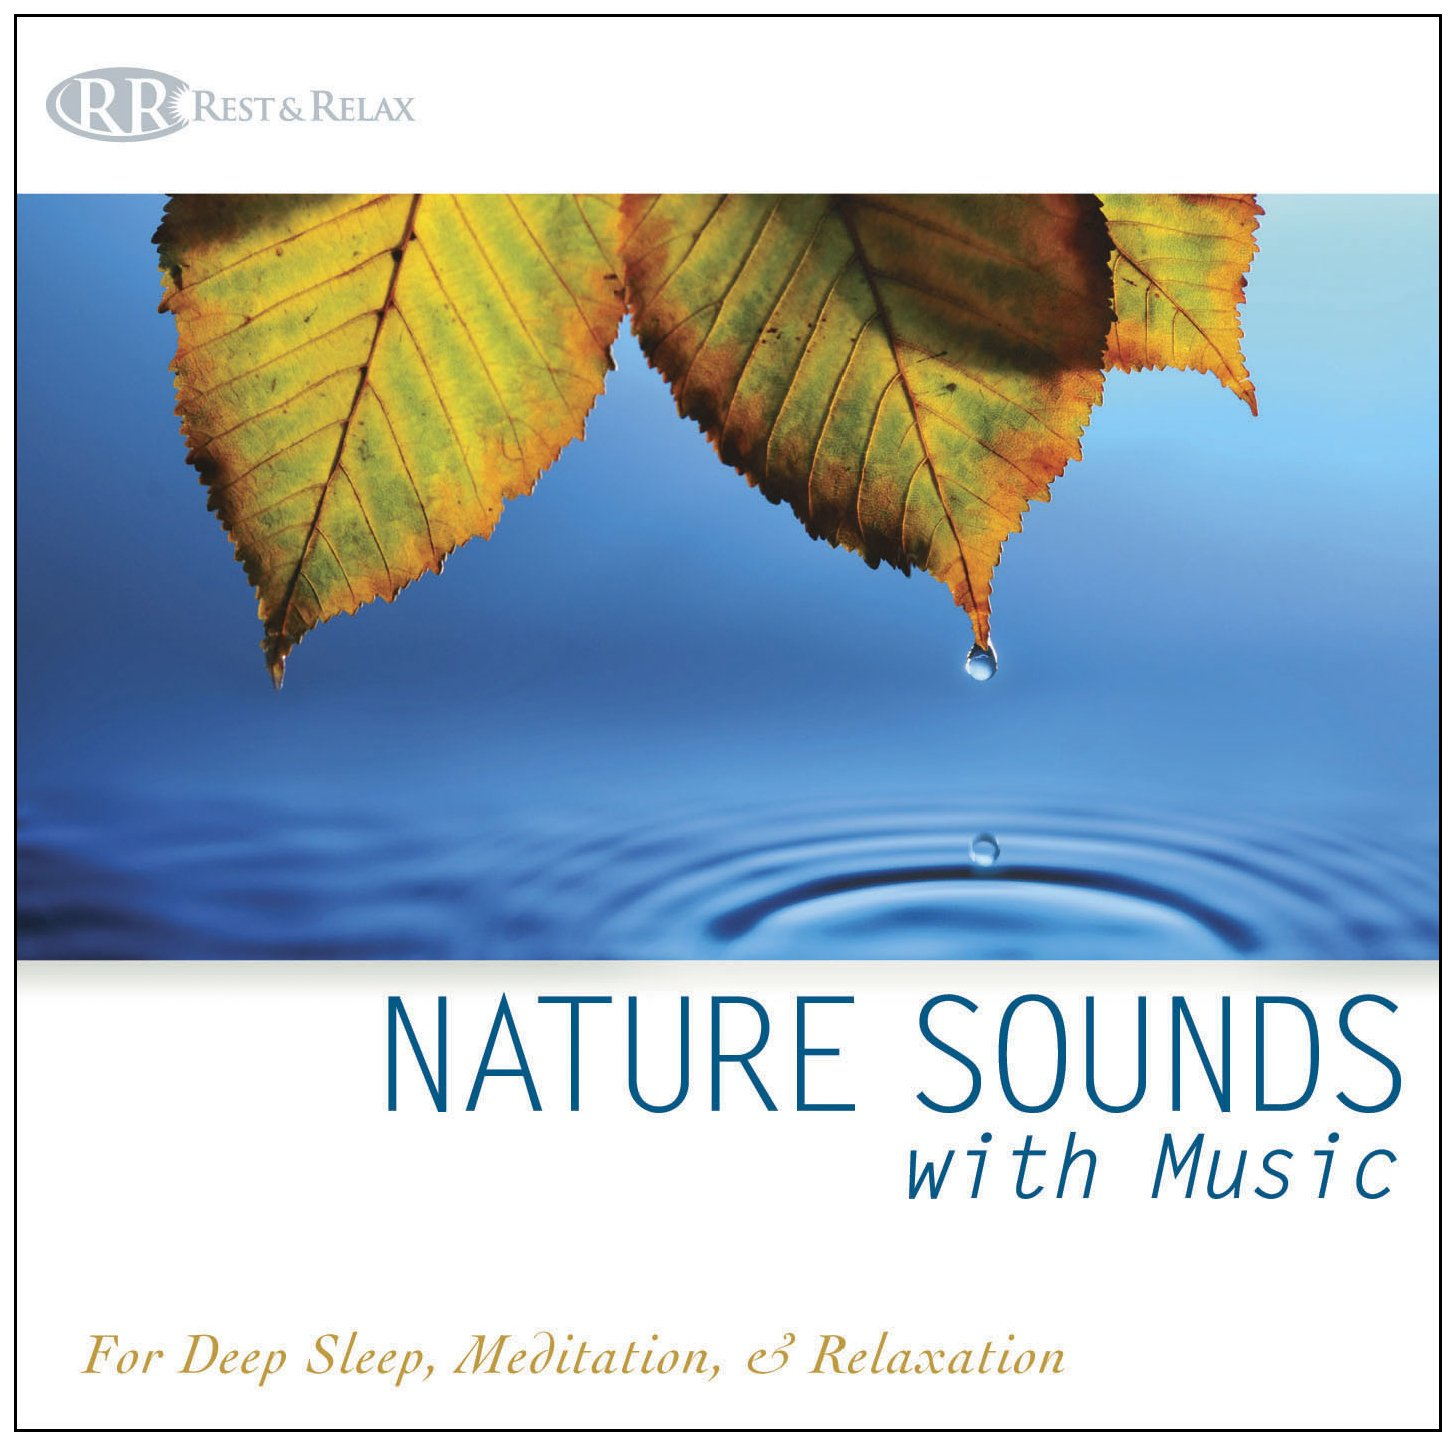 Rest & Relax Nature Artist Series, Robbins Island Music Artists ...